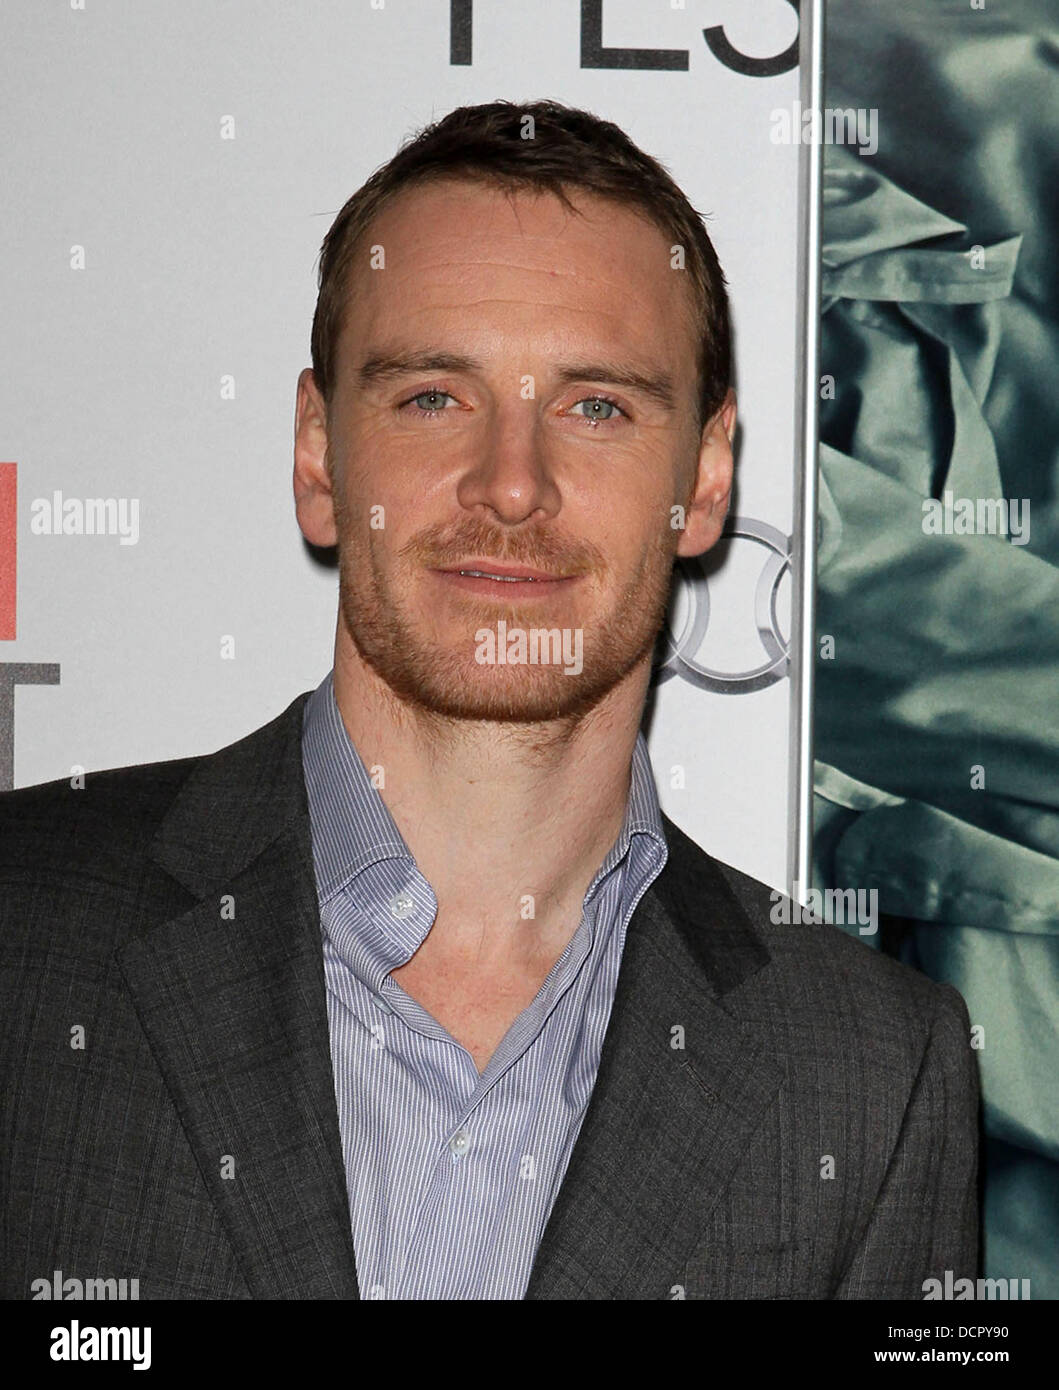 Michael Fassbender AFI Fest 2011 premiere of 'Shame' held at Stock